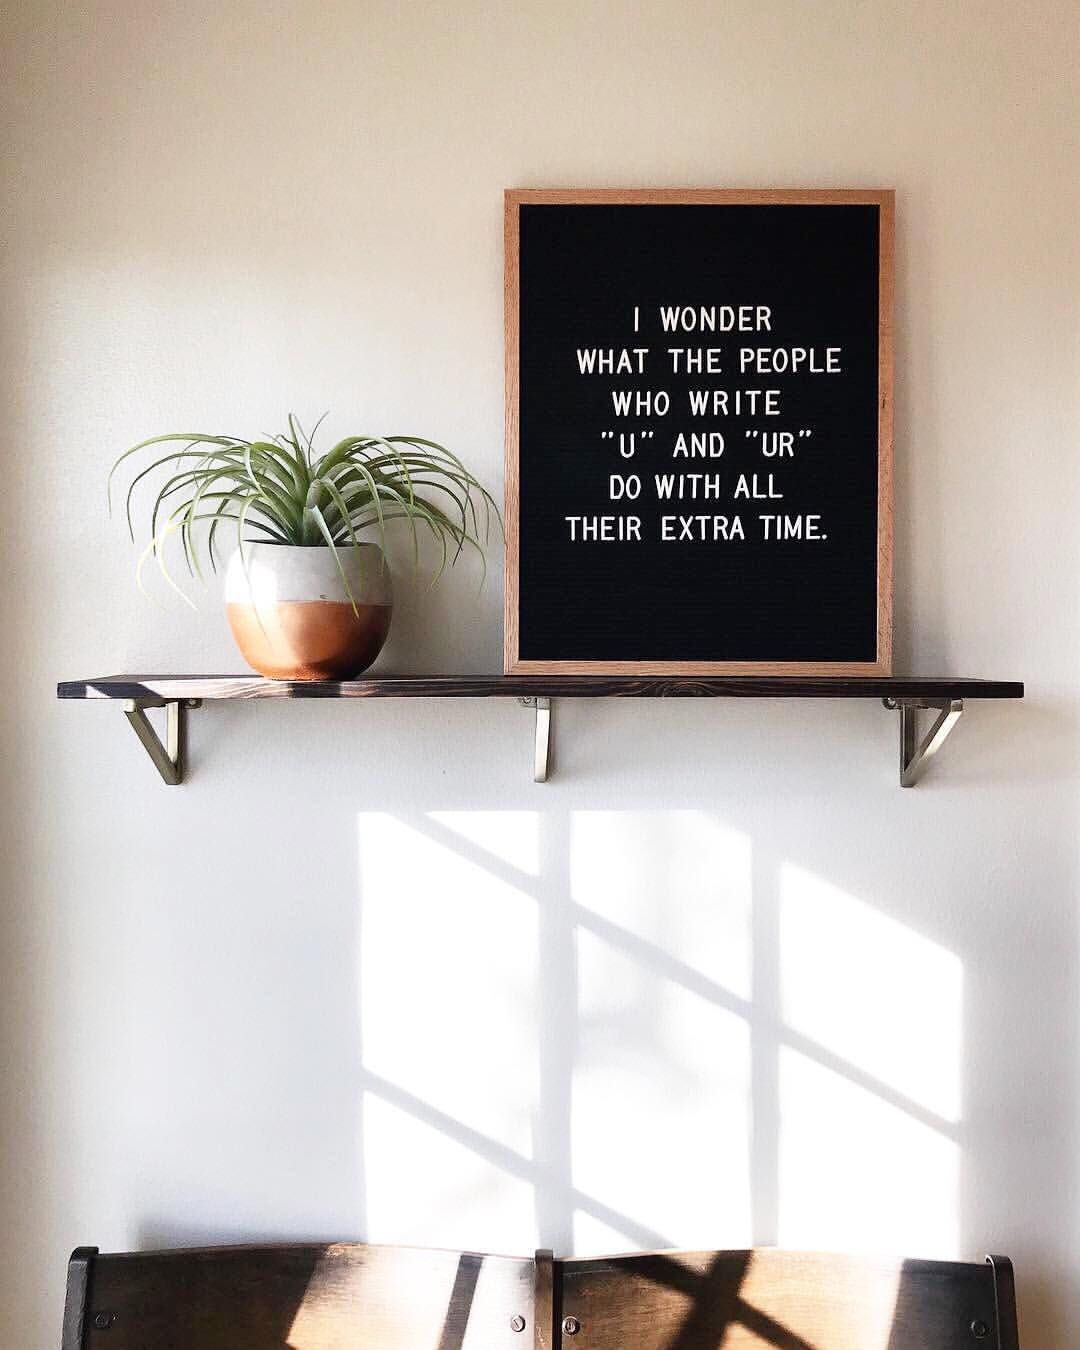 20 7k Likes 979 Comments Letterfolk Letterfolk On Instagram I Ve Tried Really Hard To Be This Casual B Funny Letters Message Board Quotes Letter Board